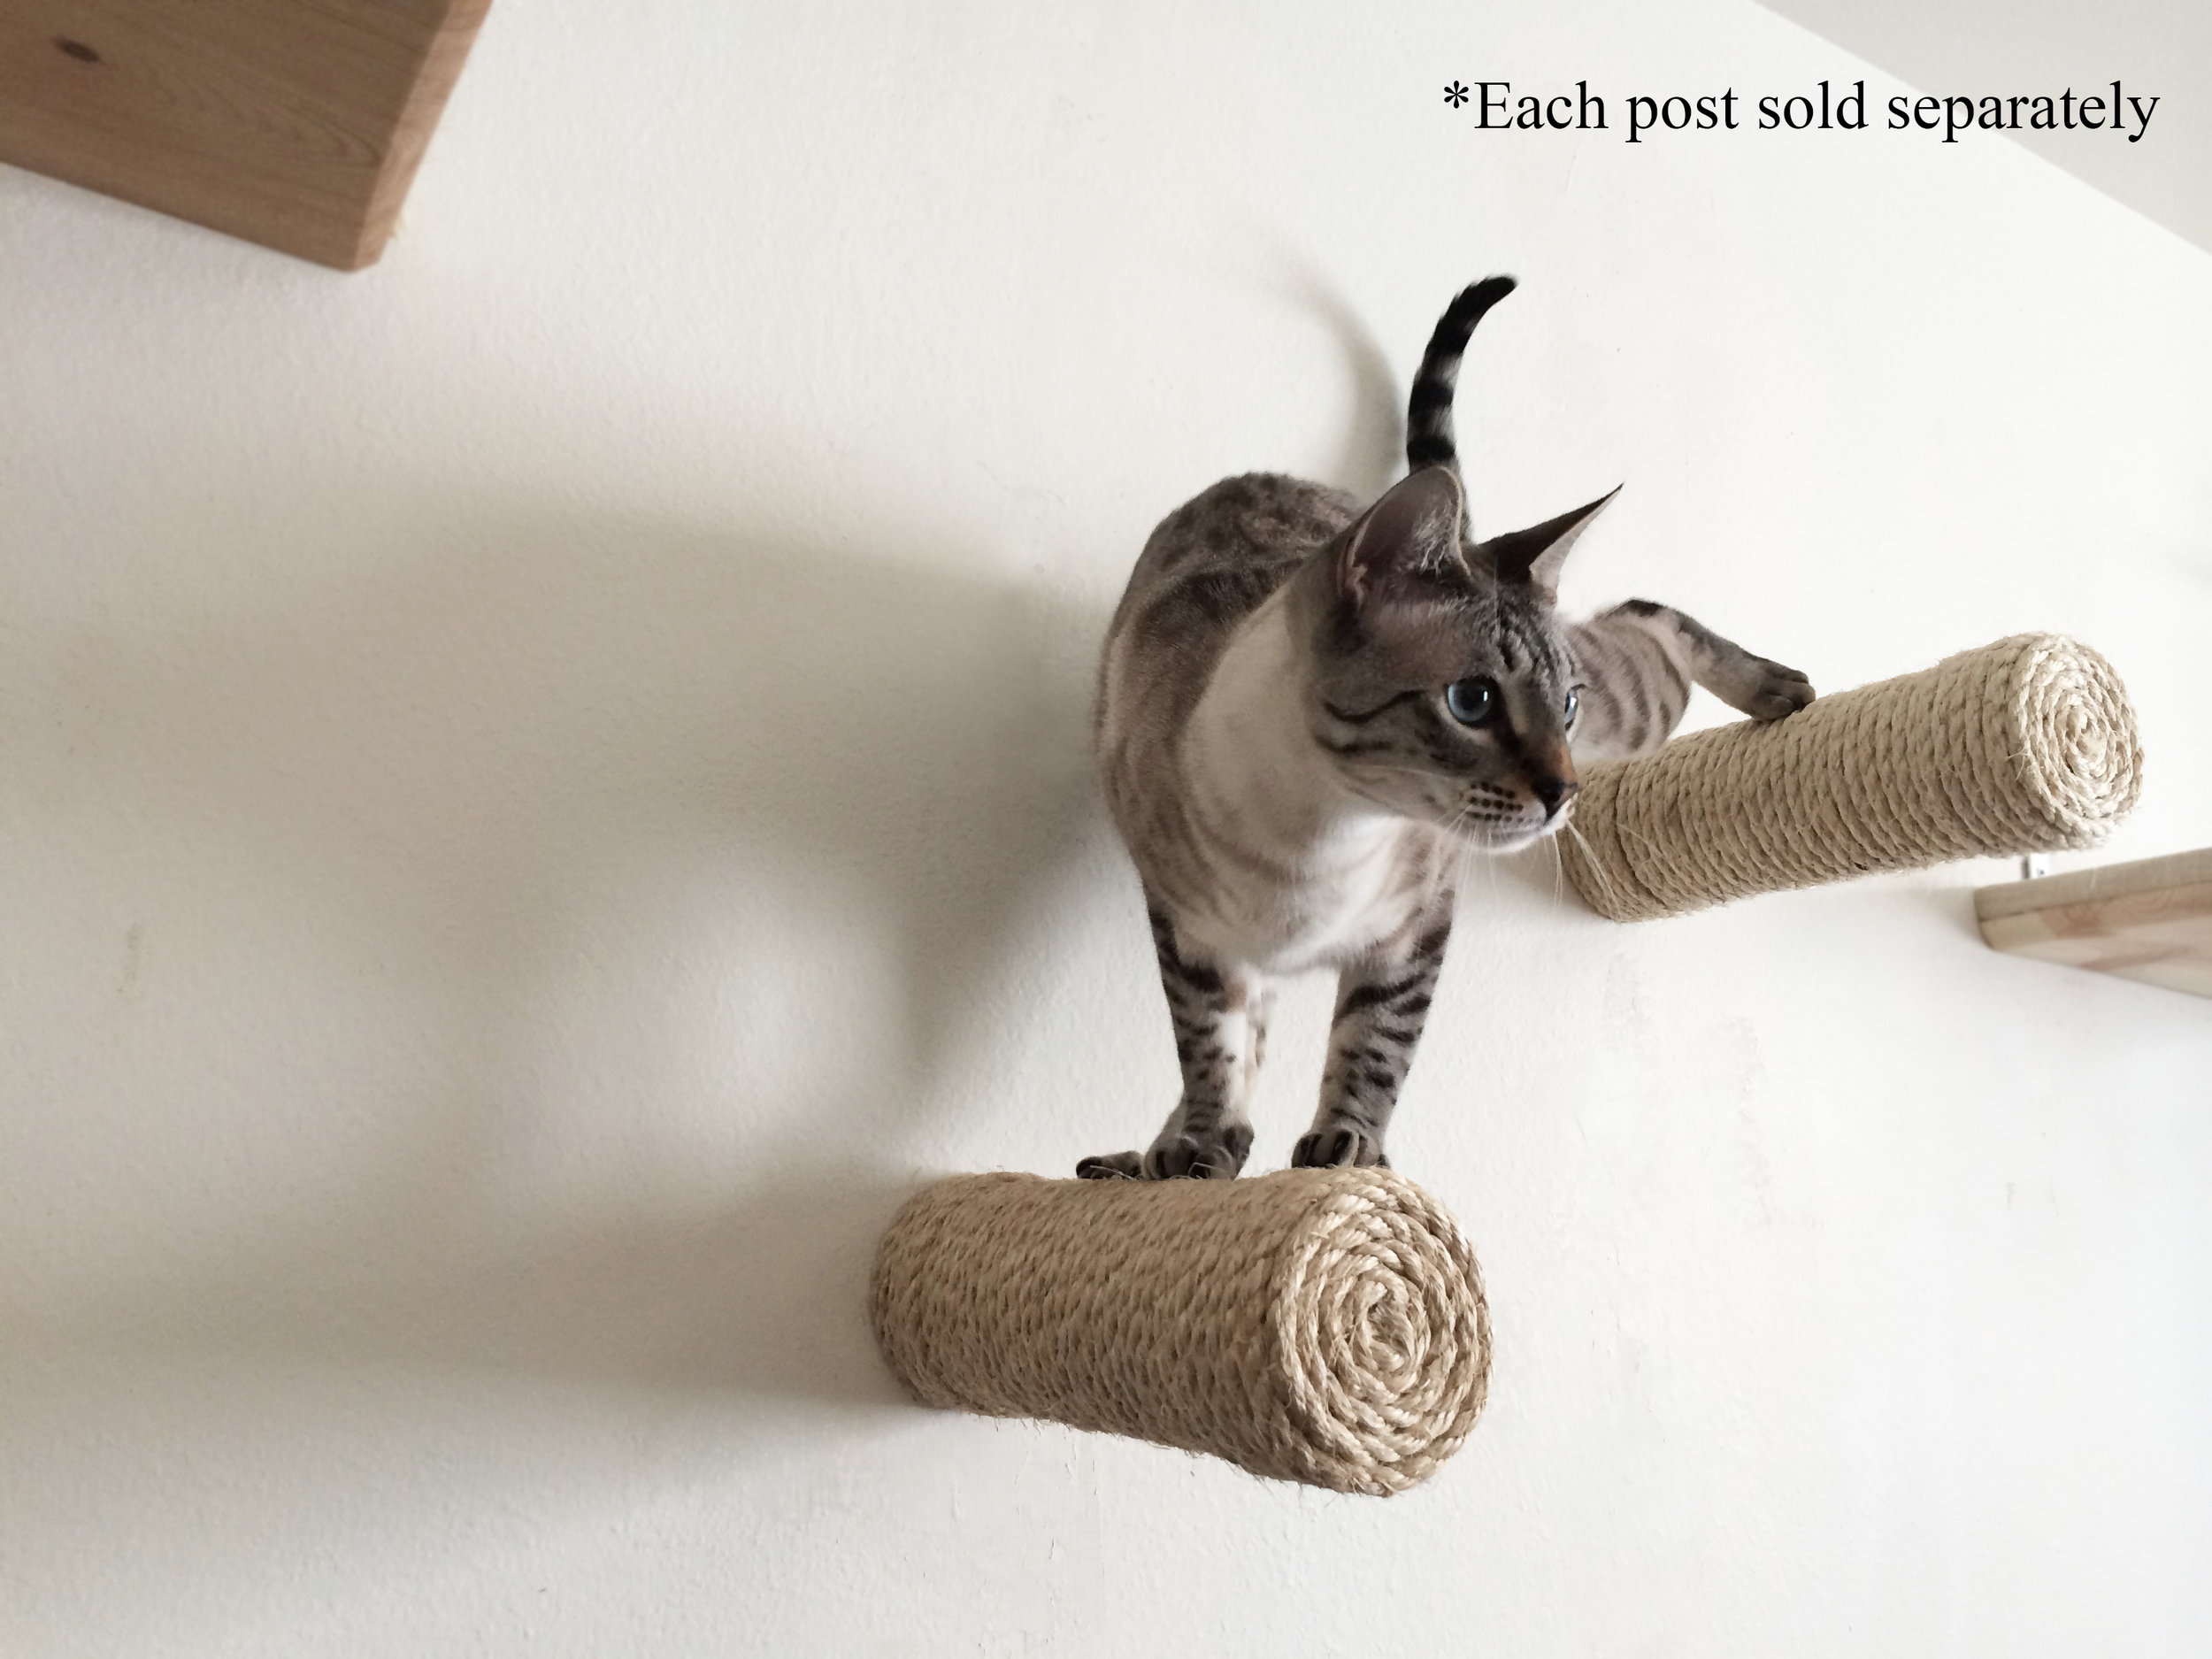 Floating sisal posts: way better than a cat tree.